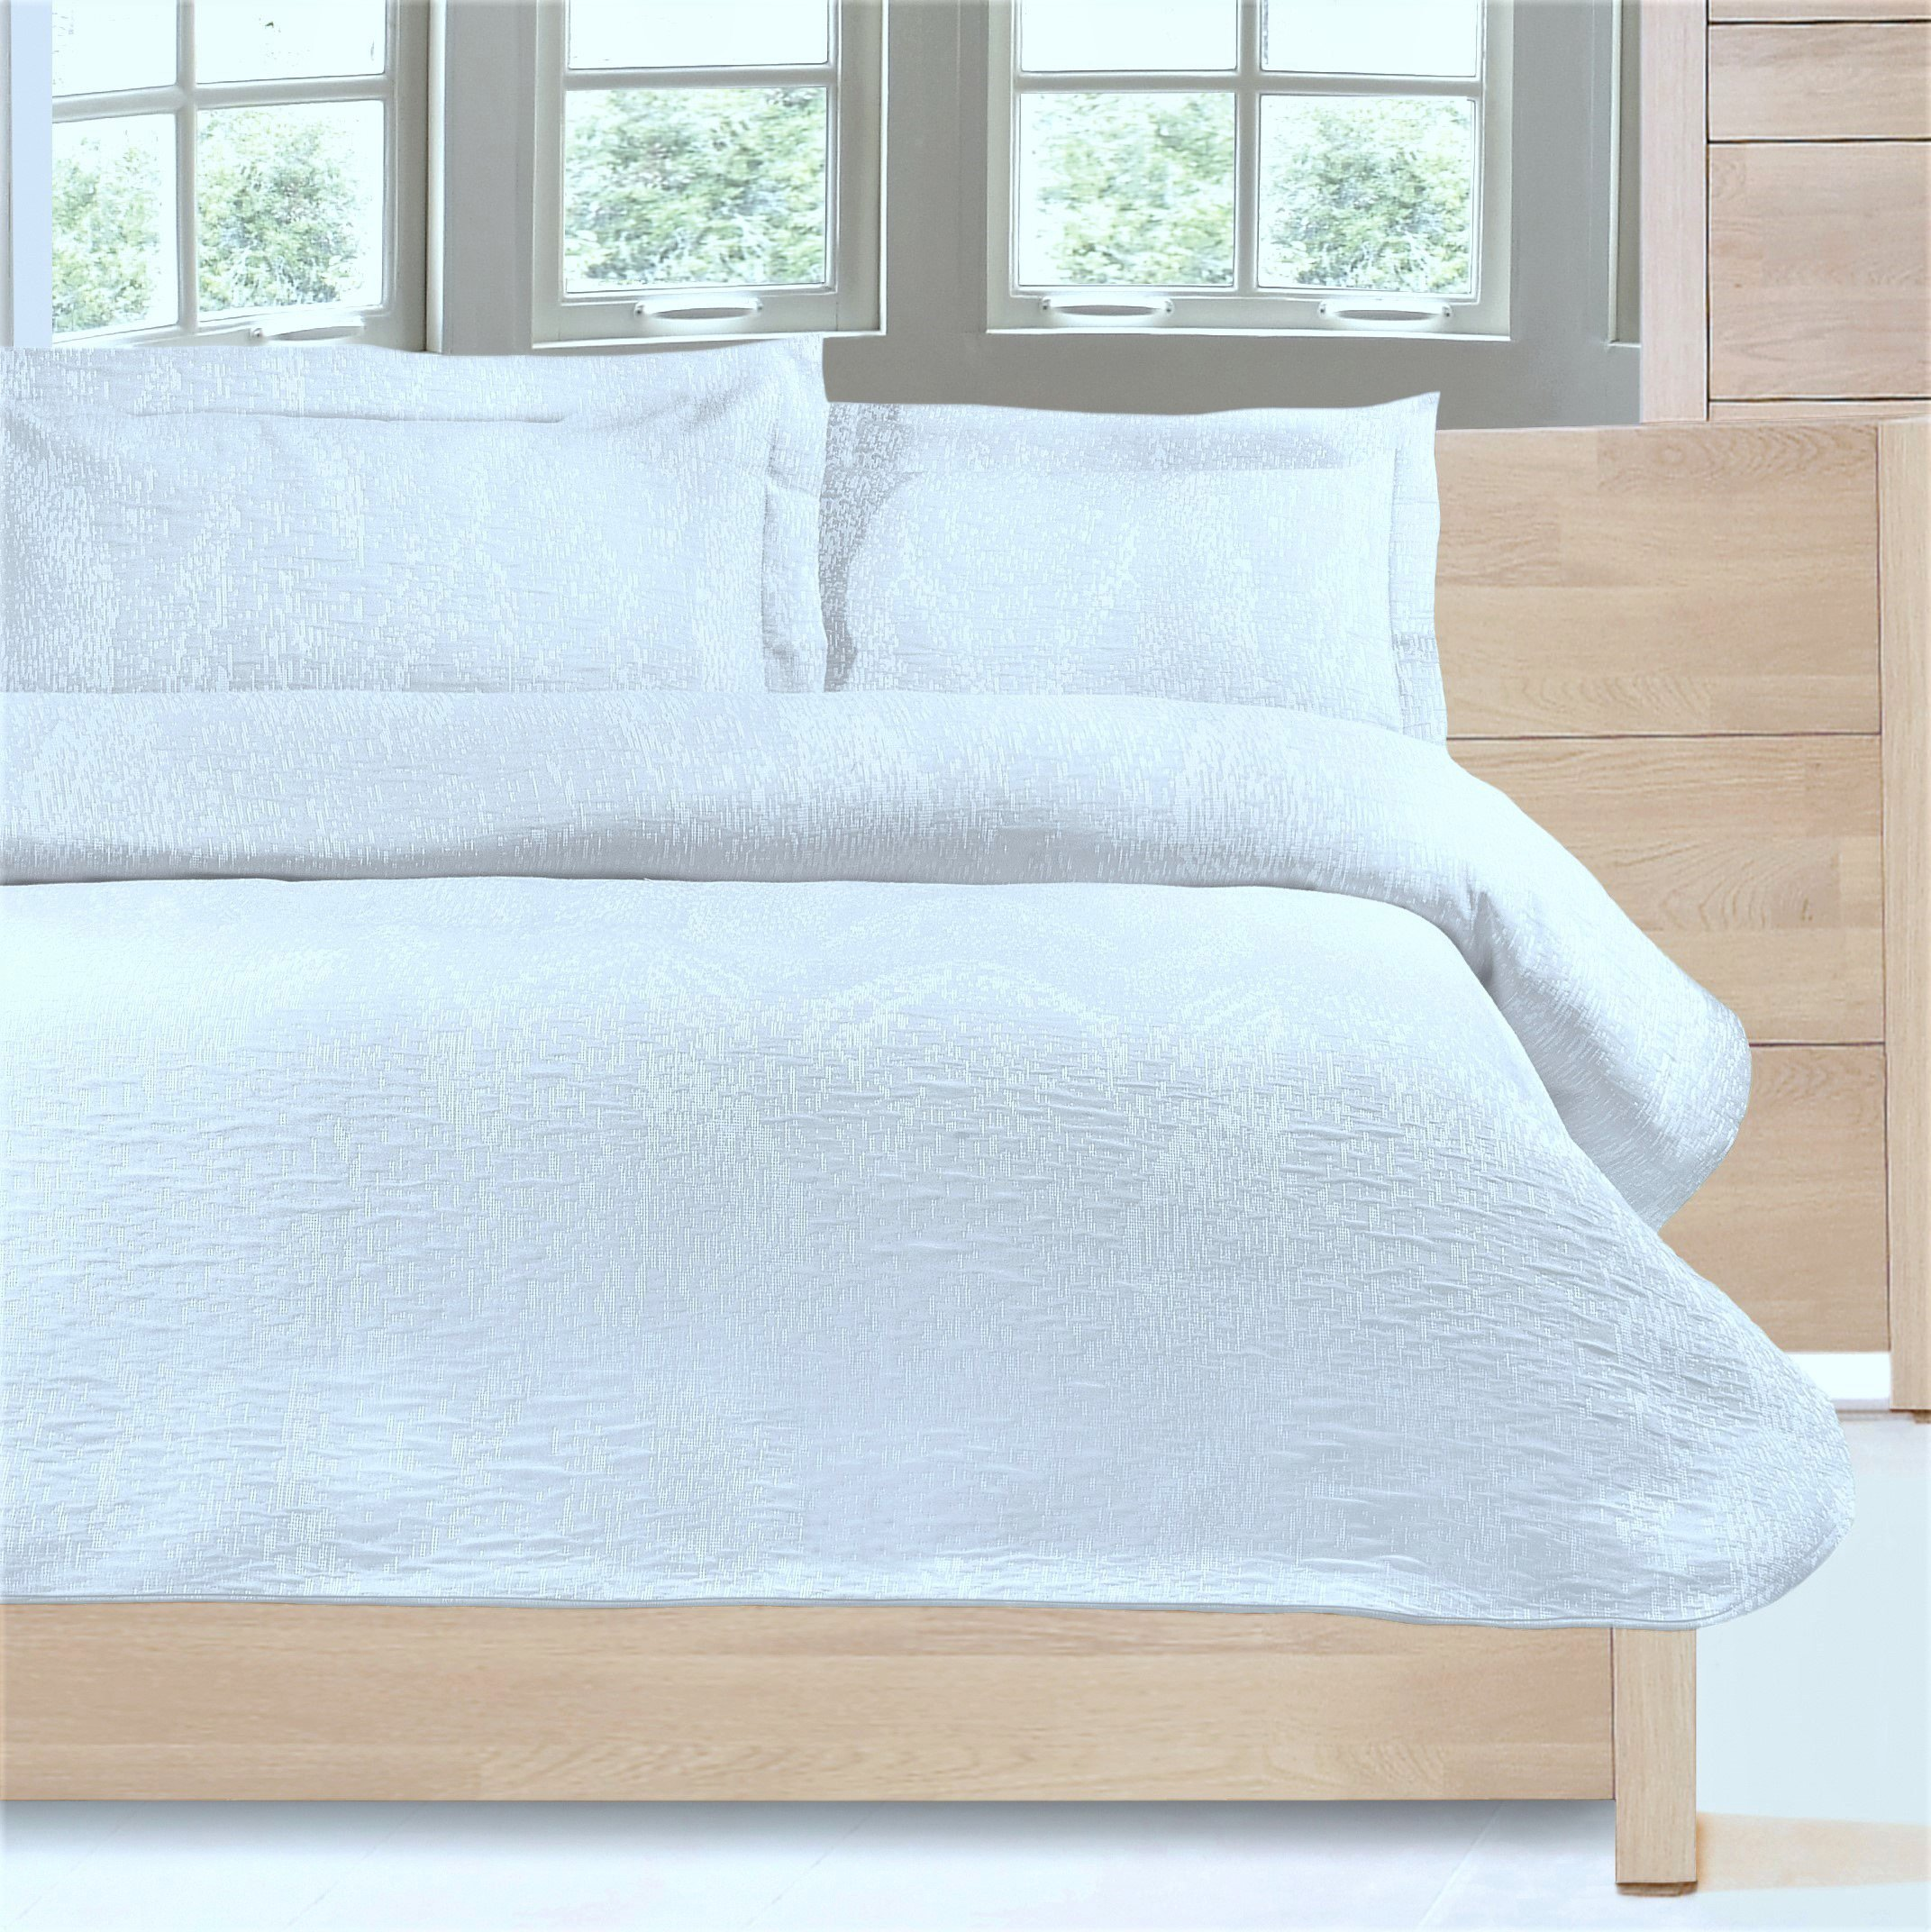 Europa Fine Linens Ikat Matelasse Bedding, Coverlet Twin Size 63-Inch by 88-Inch, White